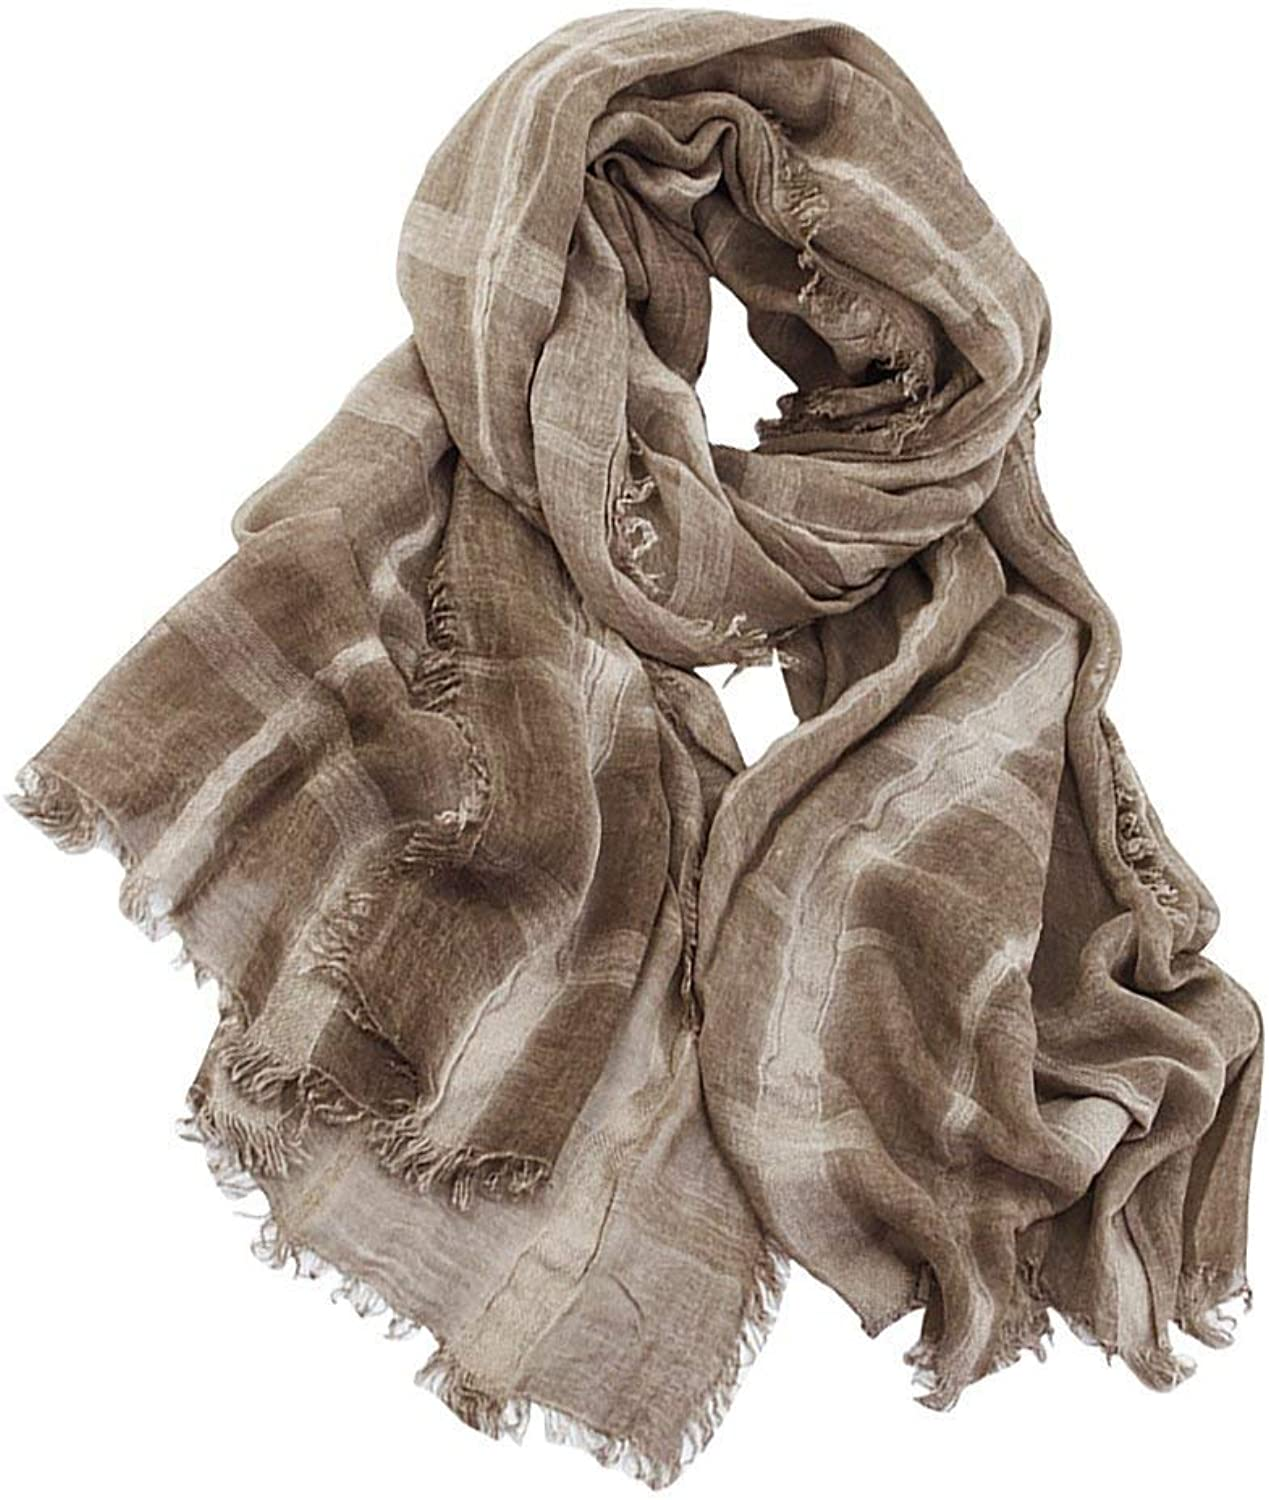 b6d8ae46 LLIND Men'S Scarf Classic Plaid Winter Scarf Plaid S Special Special  Special Style Cozy Daily Casual Warm Men's Scarf (color Coffee, Size One  Size) 6cd0a7